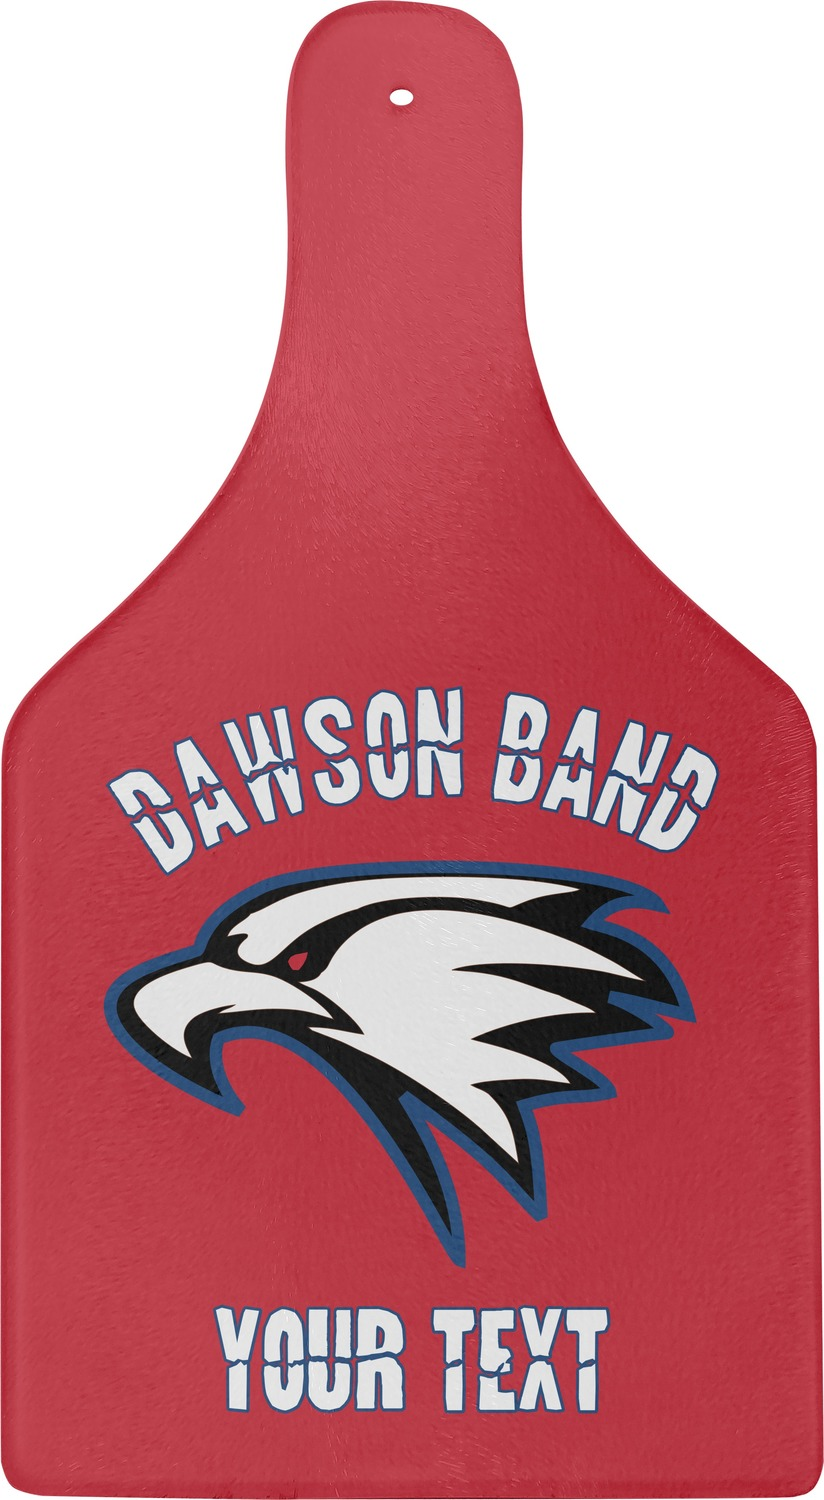 Dawson Eagles Band Logo Cheese Board (Personalized) - YouCustomizeIt